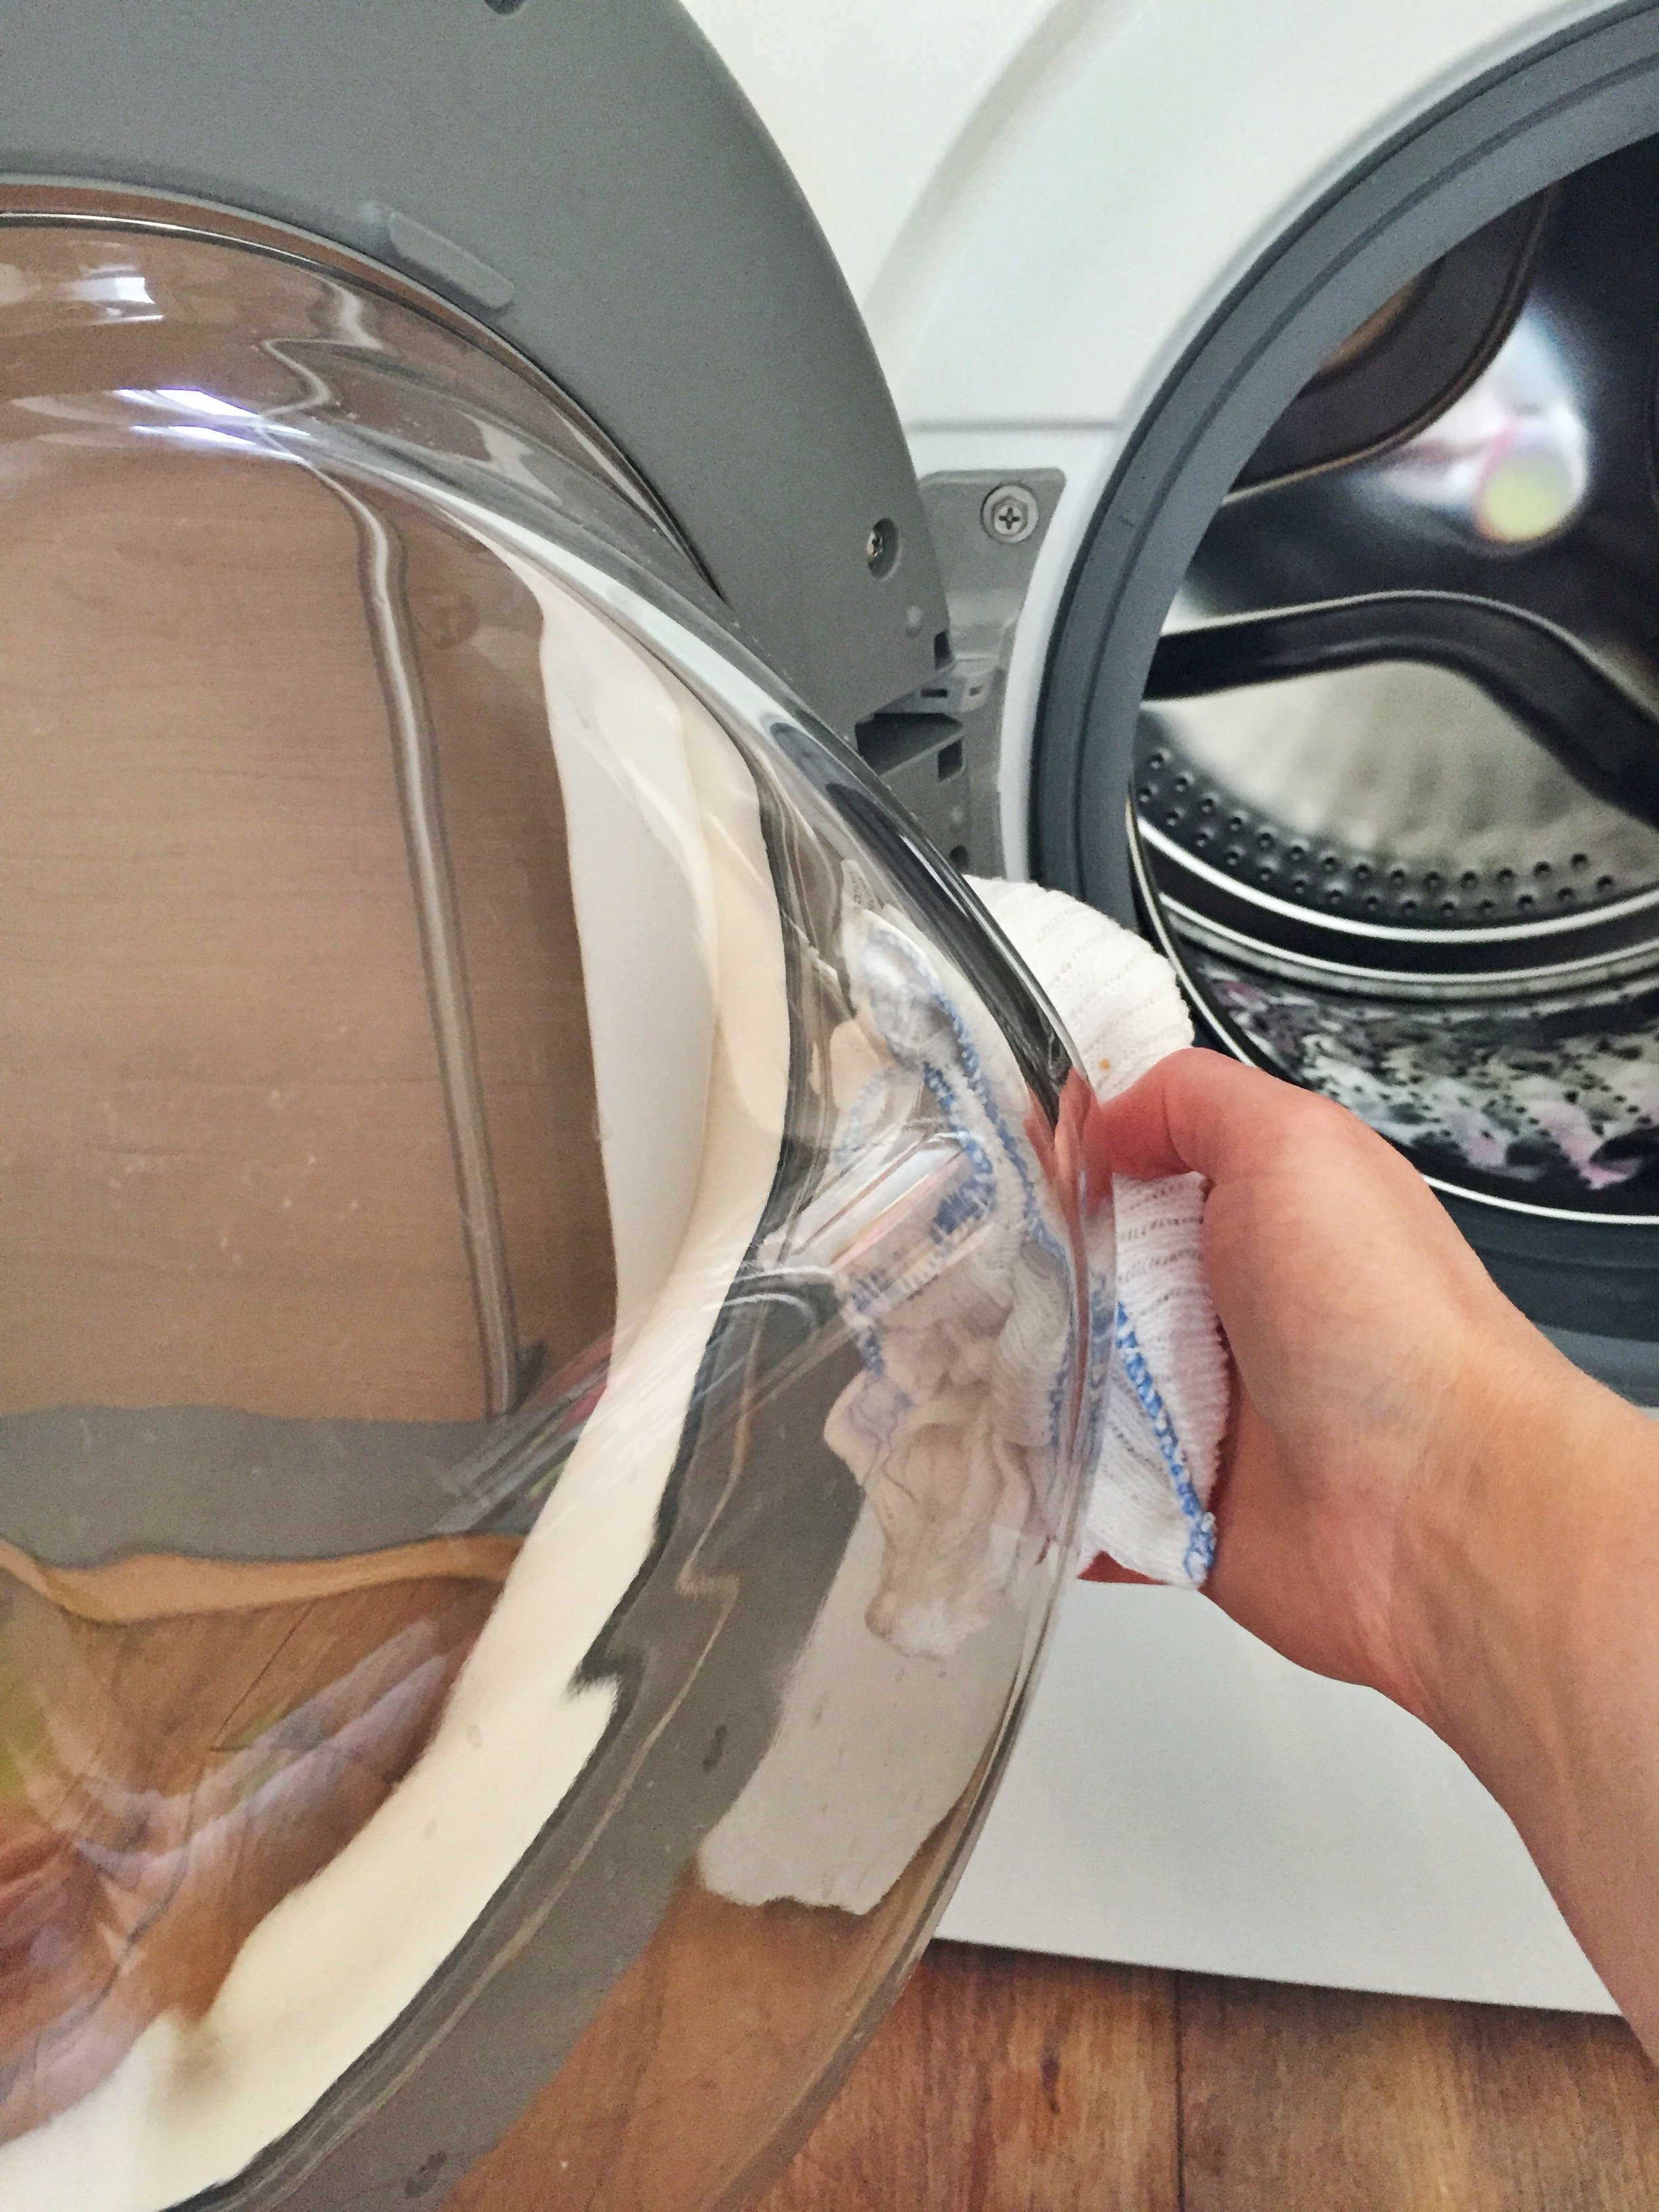 glass door on a samsung washing machine being wiped with a soft white cloth to clean it